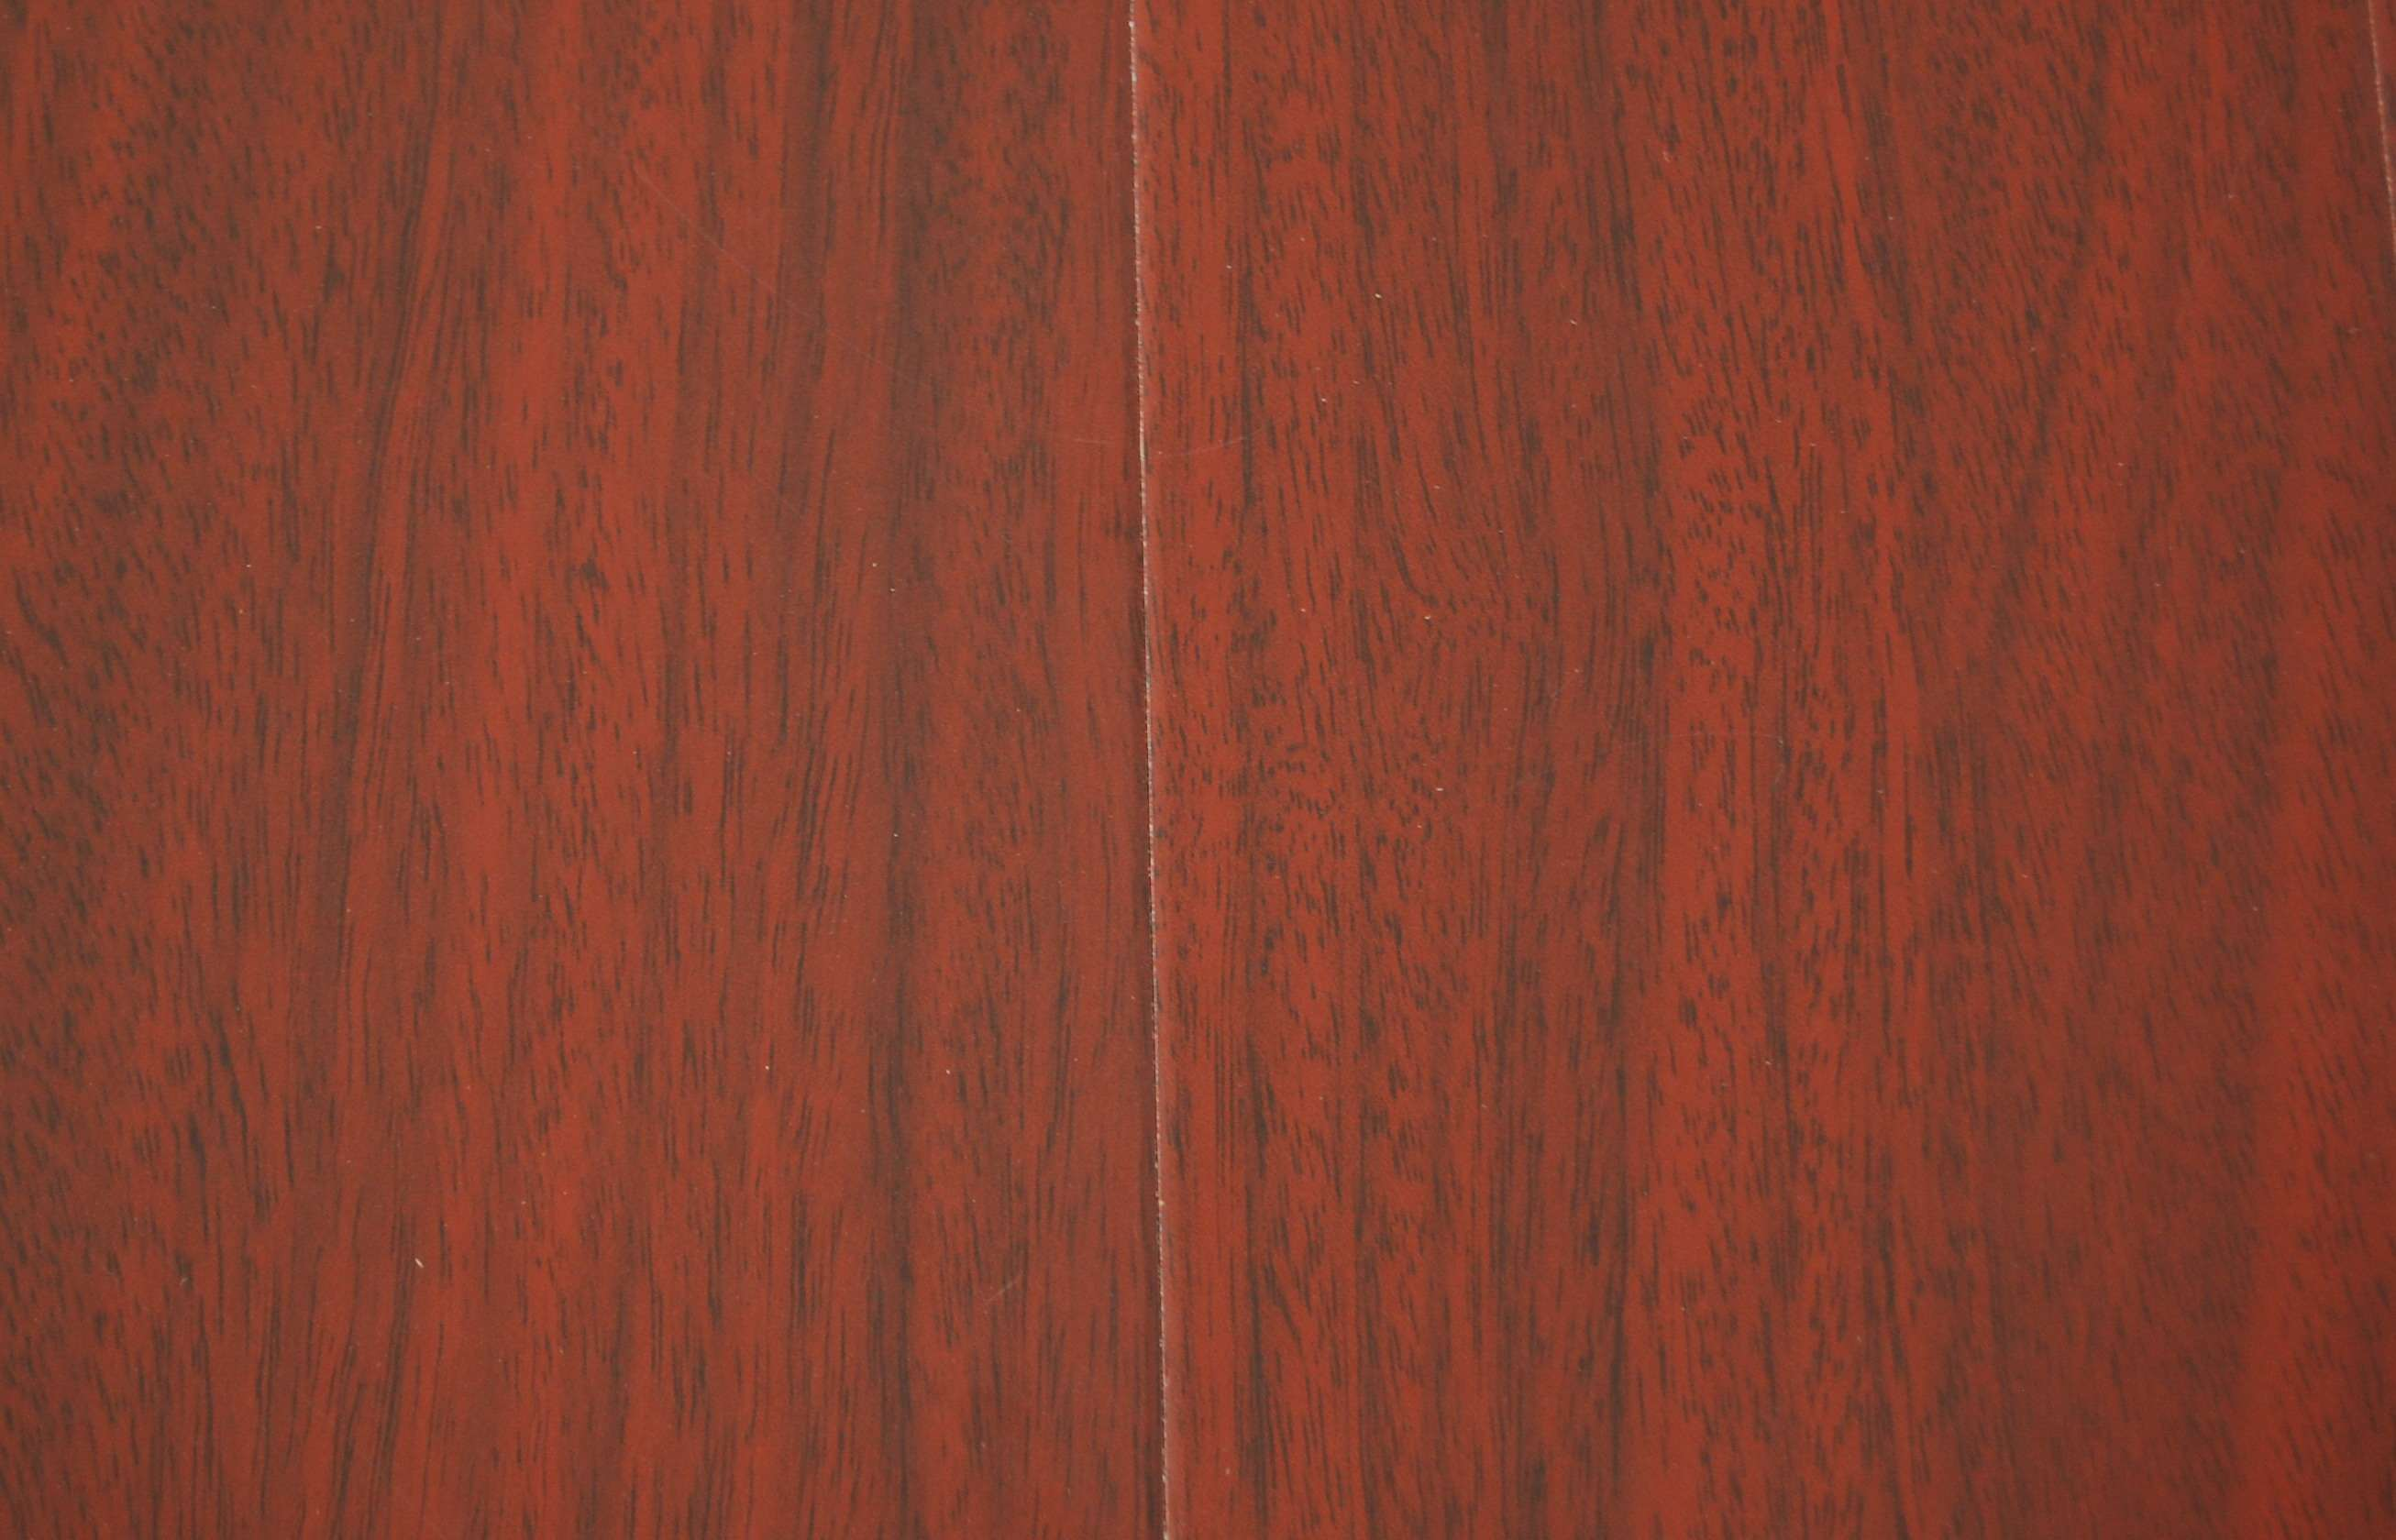 Formica laminate wood flooring images for Laminate tiles